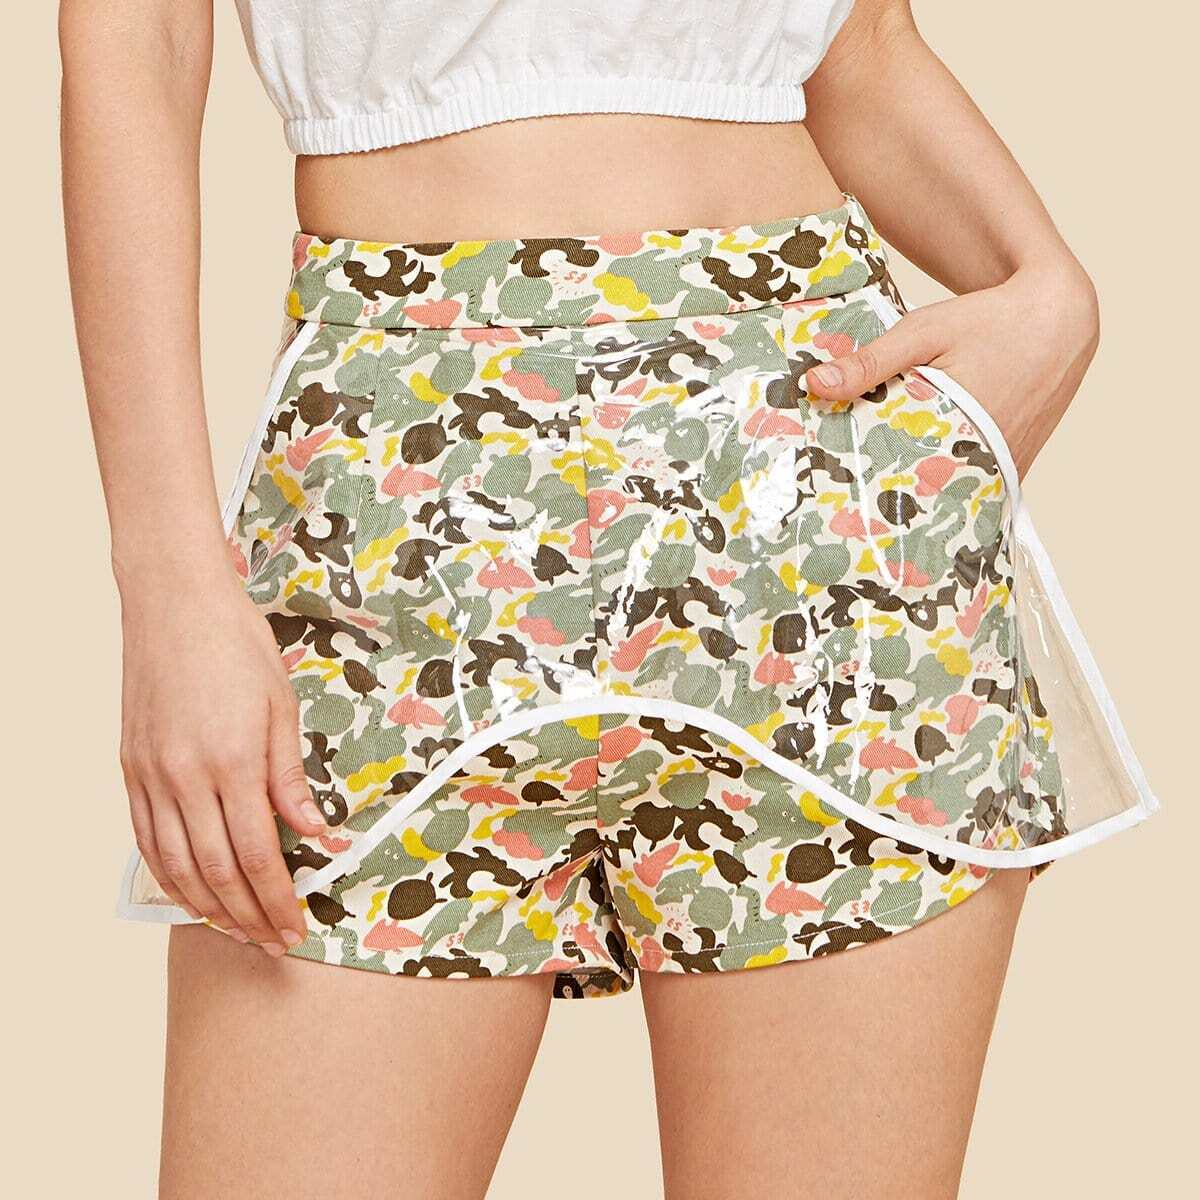 - Camo Print Shorts with Transparent Cover